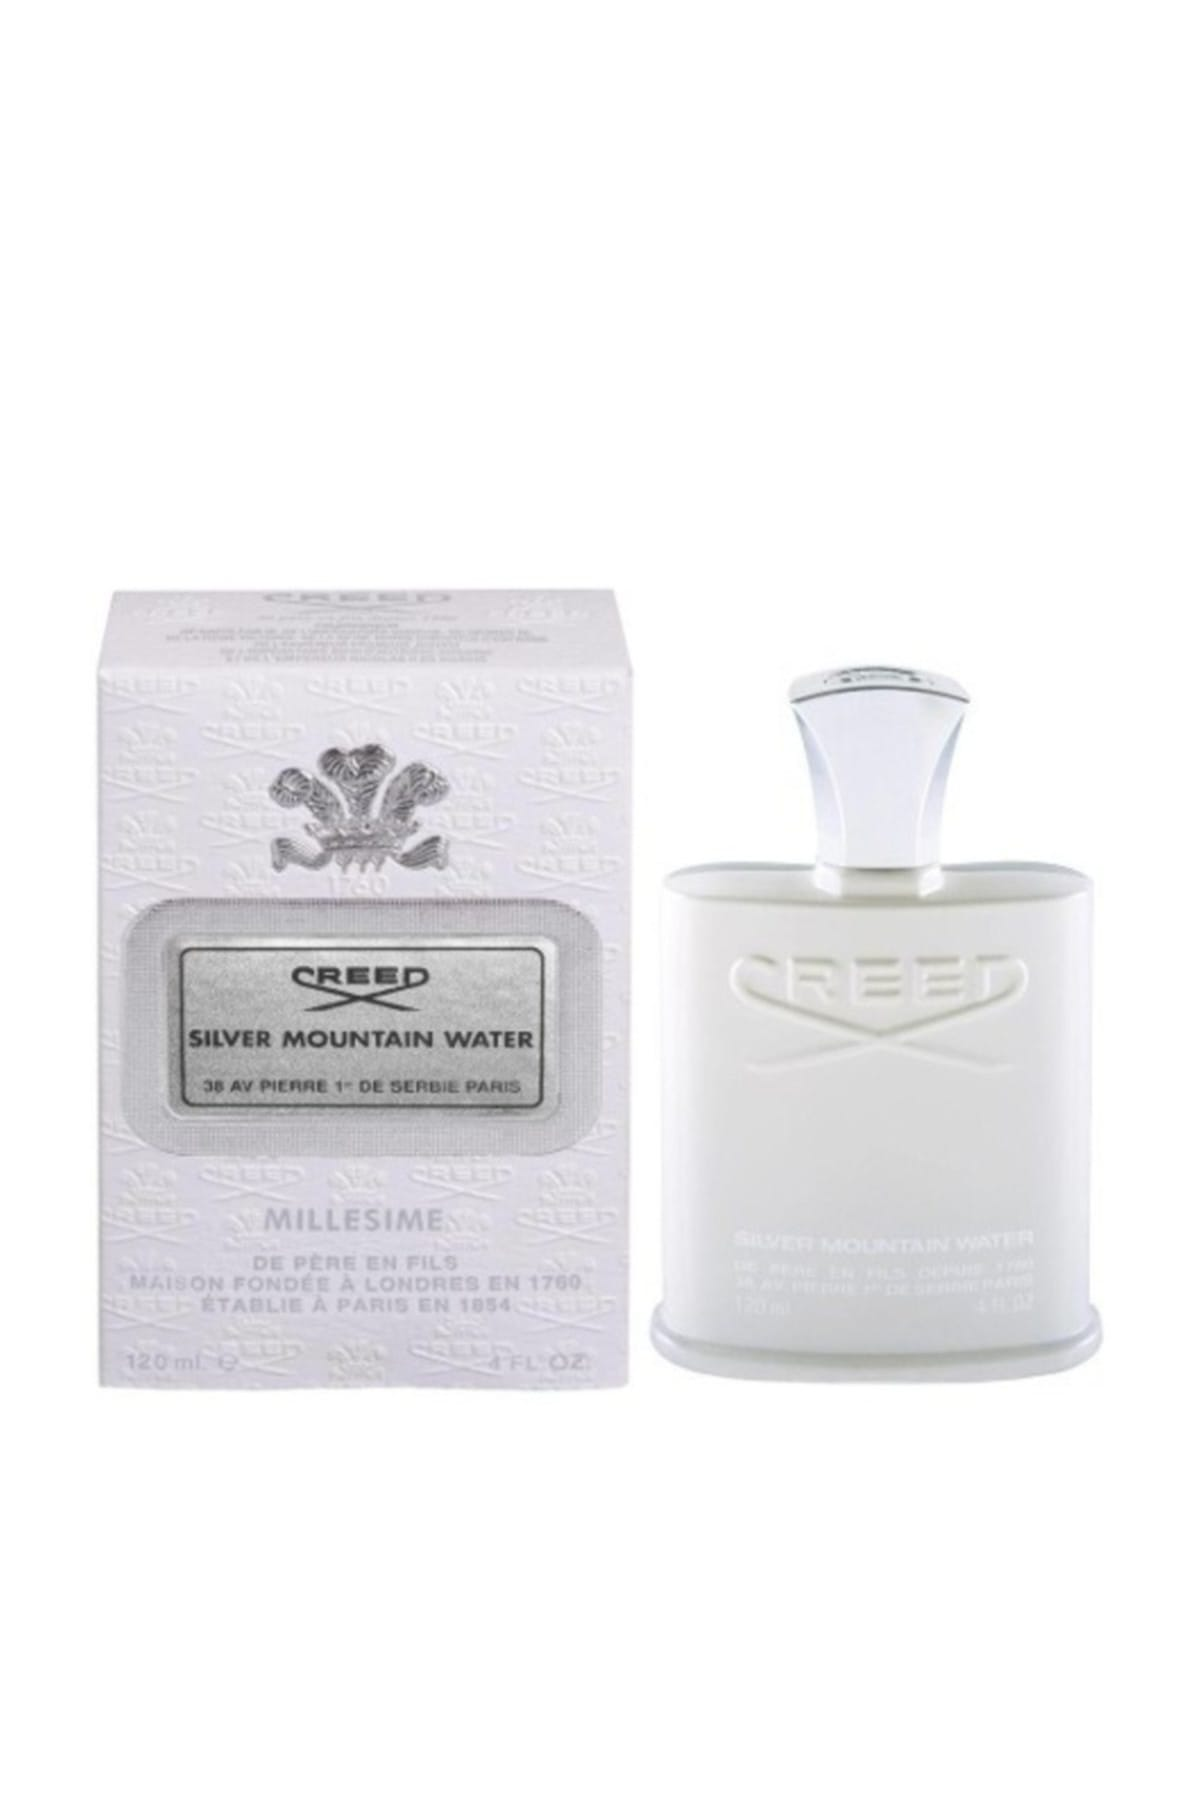 Creed Creed Silver Mountain Water Fragrance Spray 120ml